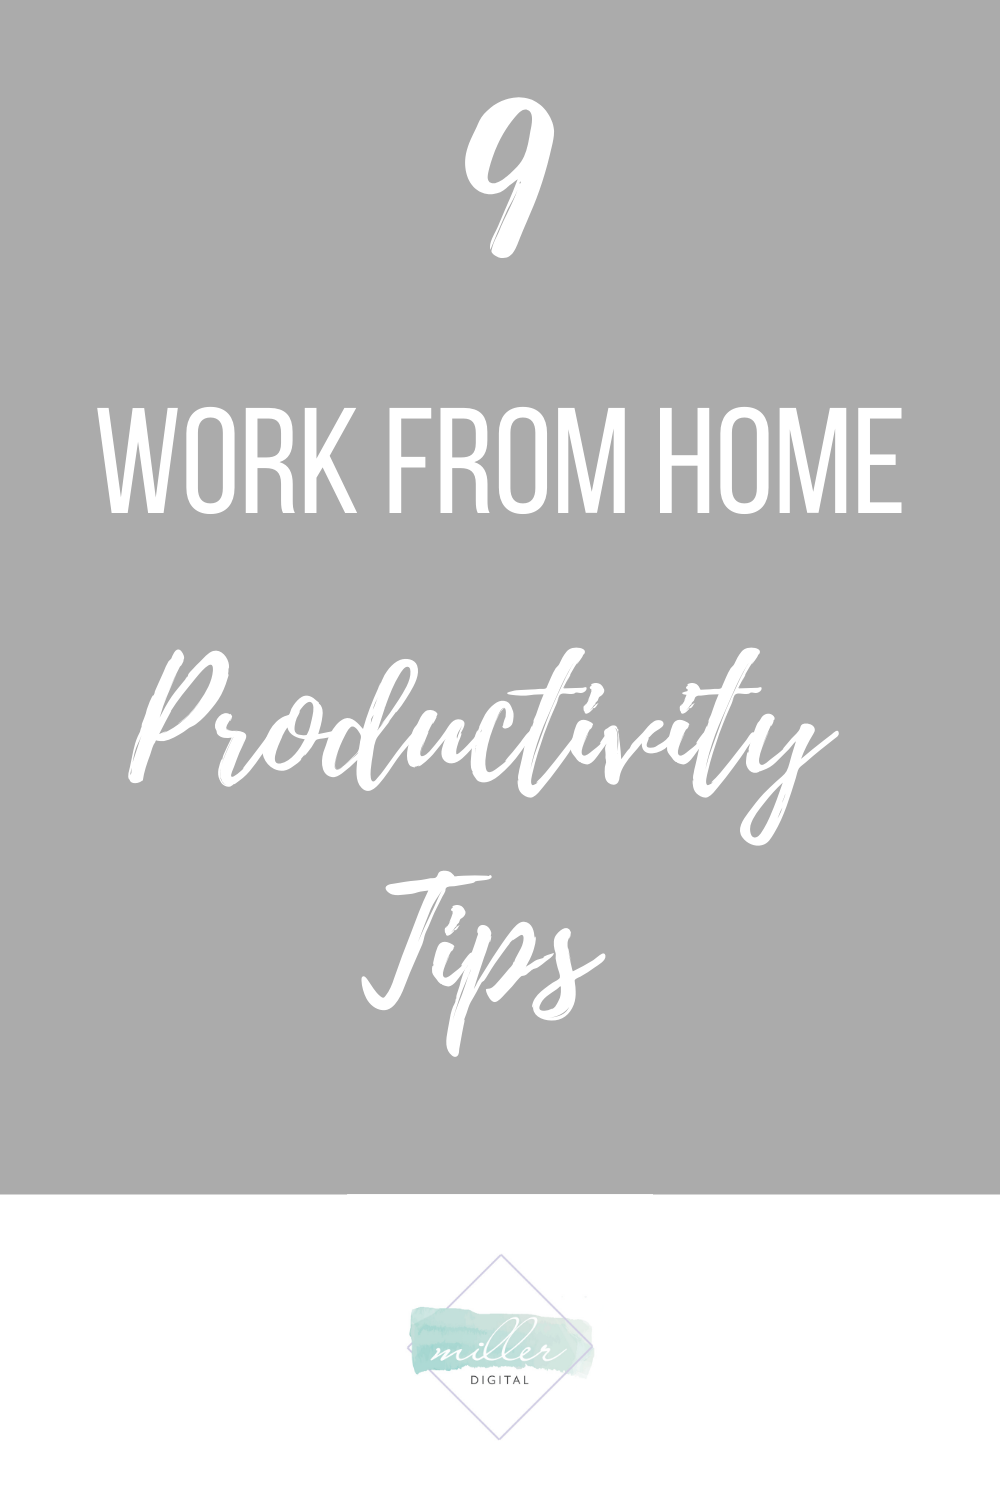 Many employees across the world are now discovering the many joys and challenges of living like a solopreneur and working from home.  Here are 9 work from home productivity tips to help you be the best worker you can be!#workfromhome #entrepreneur #onlinebusinessowner #businessproductivity #workingfromhome #solopreneur